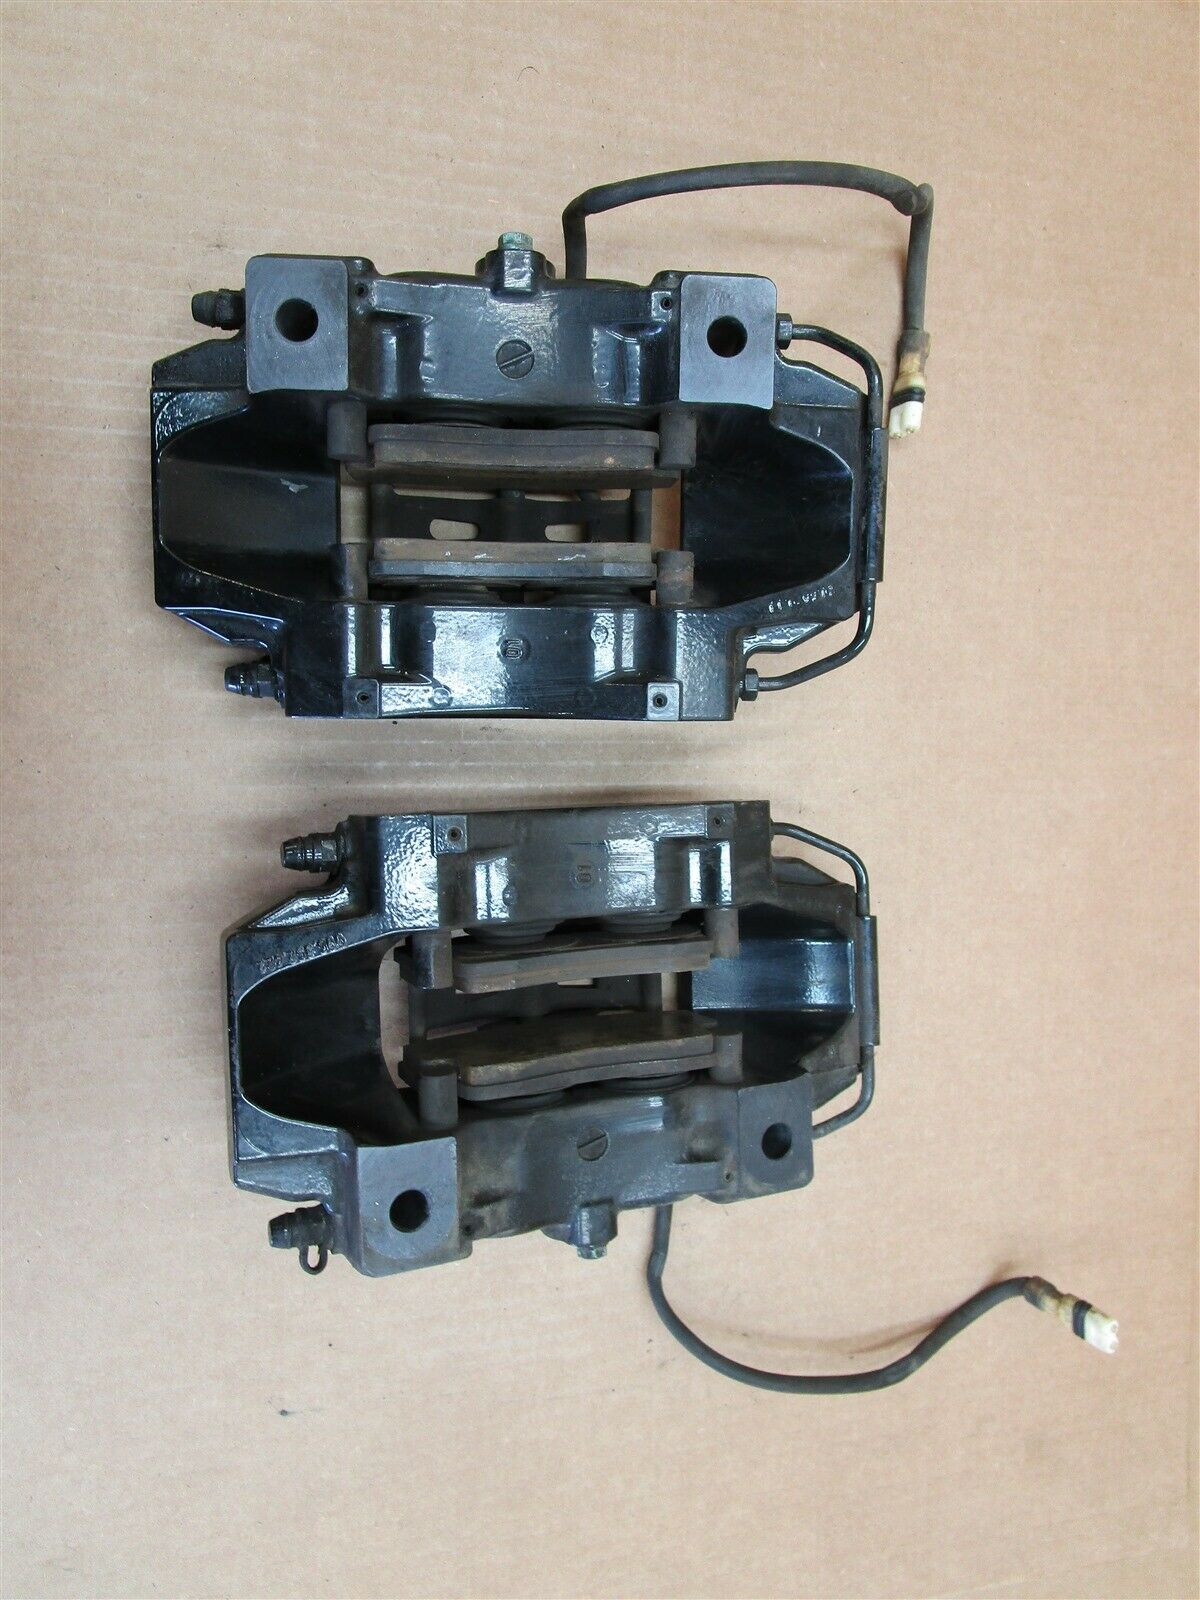 02 Carrera 911 Porsche 996 REAR BREMBO BRAKE CALIPERS 996352422 996352421 51,211